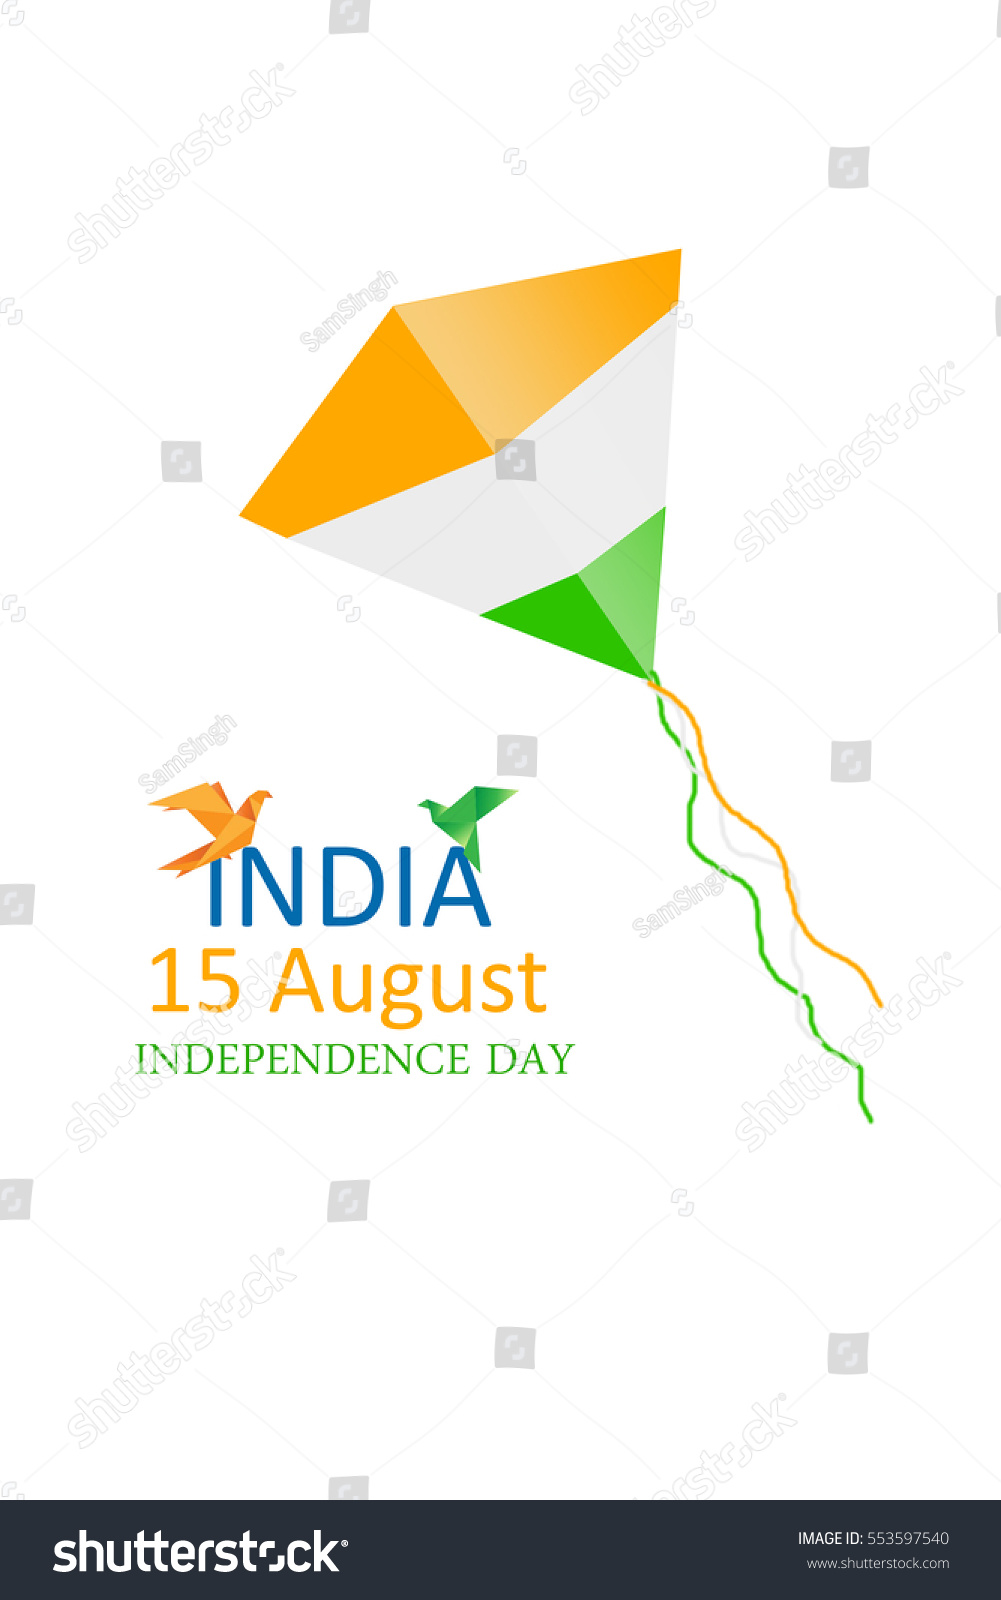 Indian Independence Day Greetings Tricolor Stock Illustration